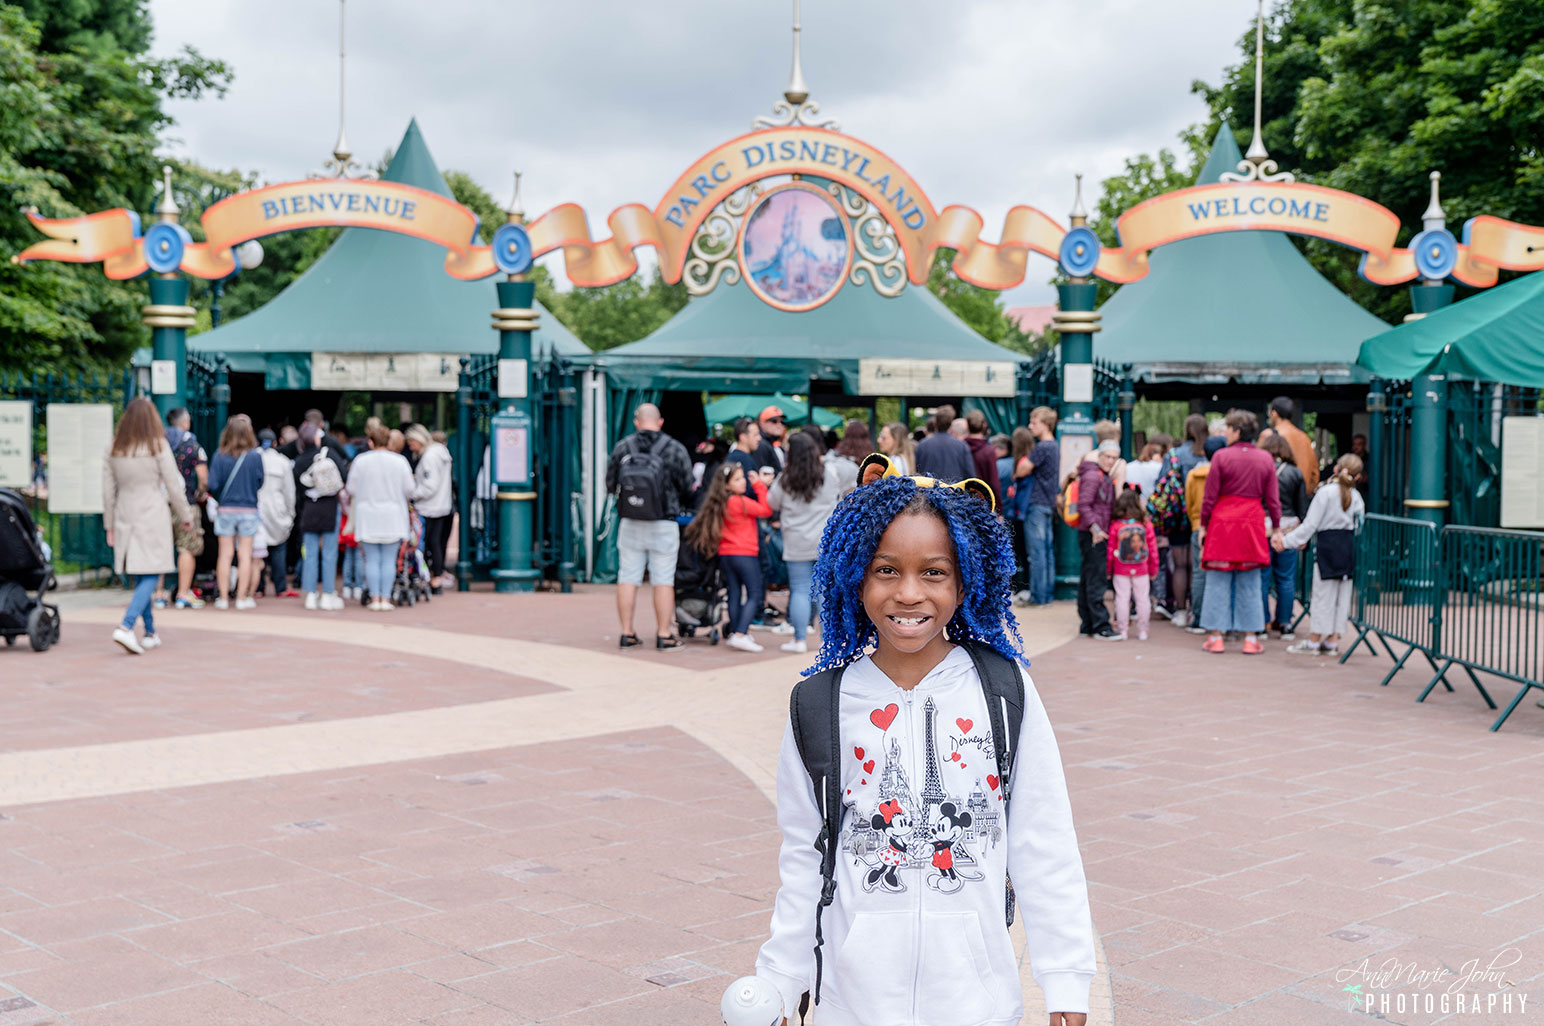 10 Exclusive Disneyland Paris Ears Headbands You Gotta Have ~ #Disney